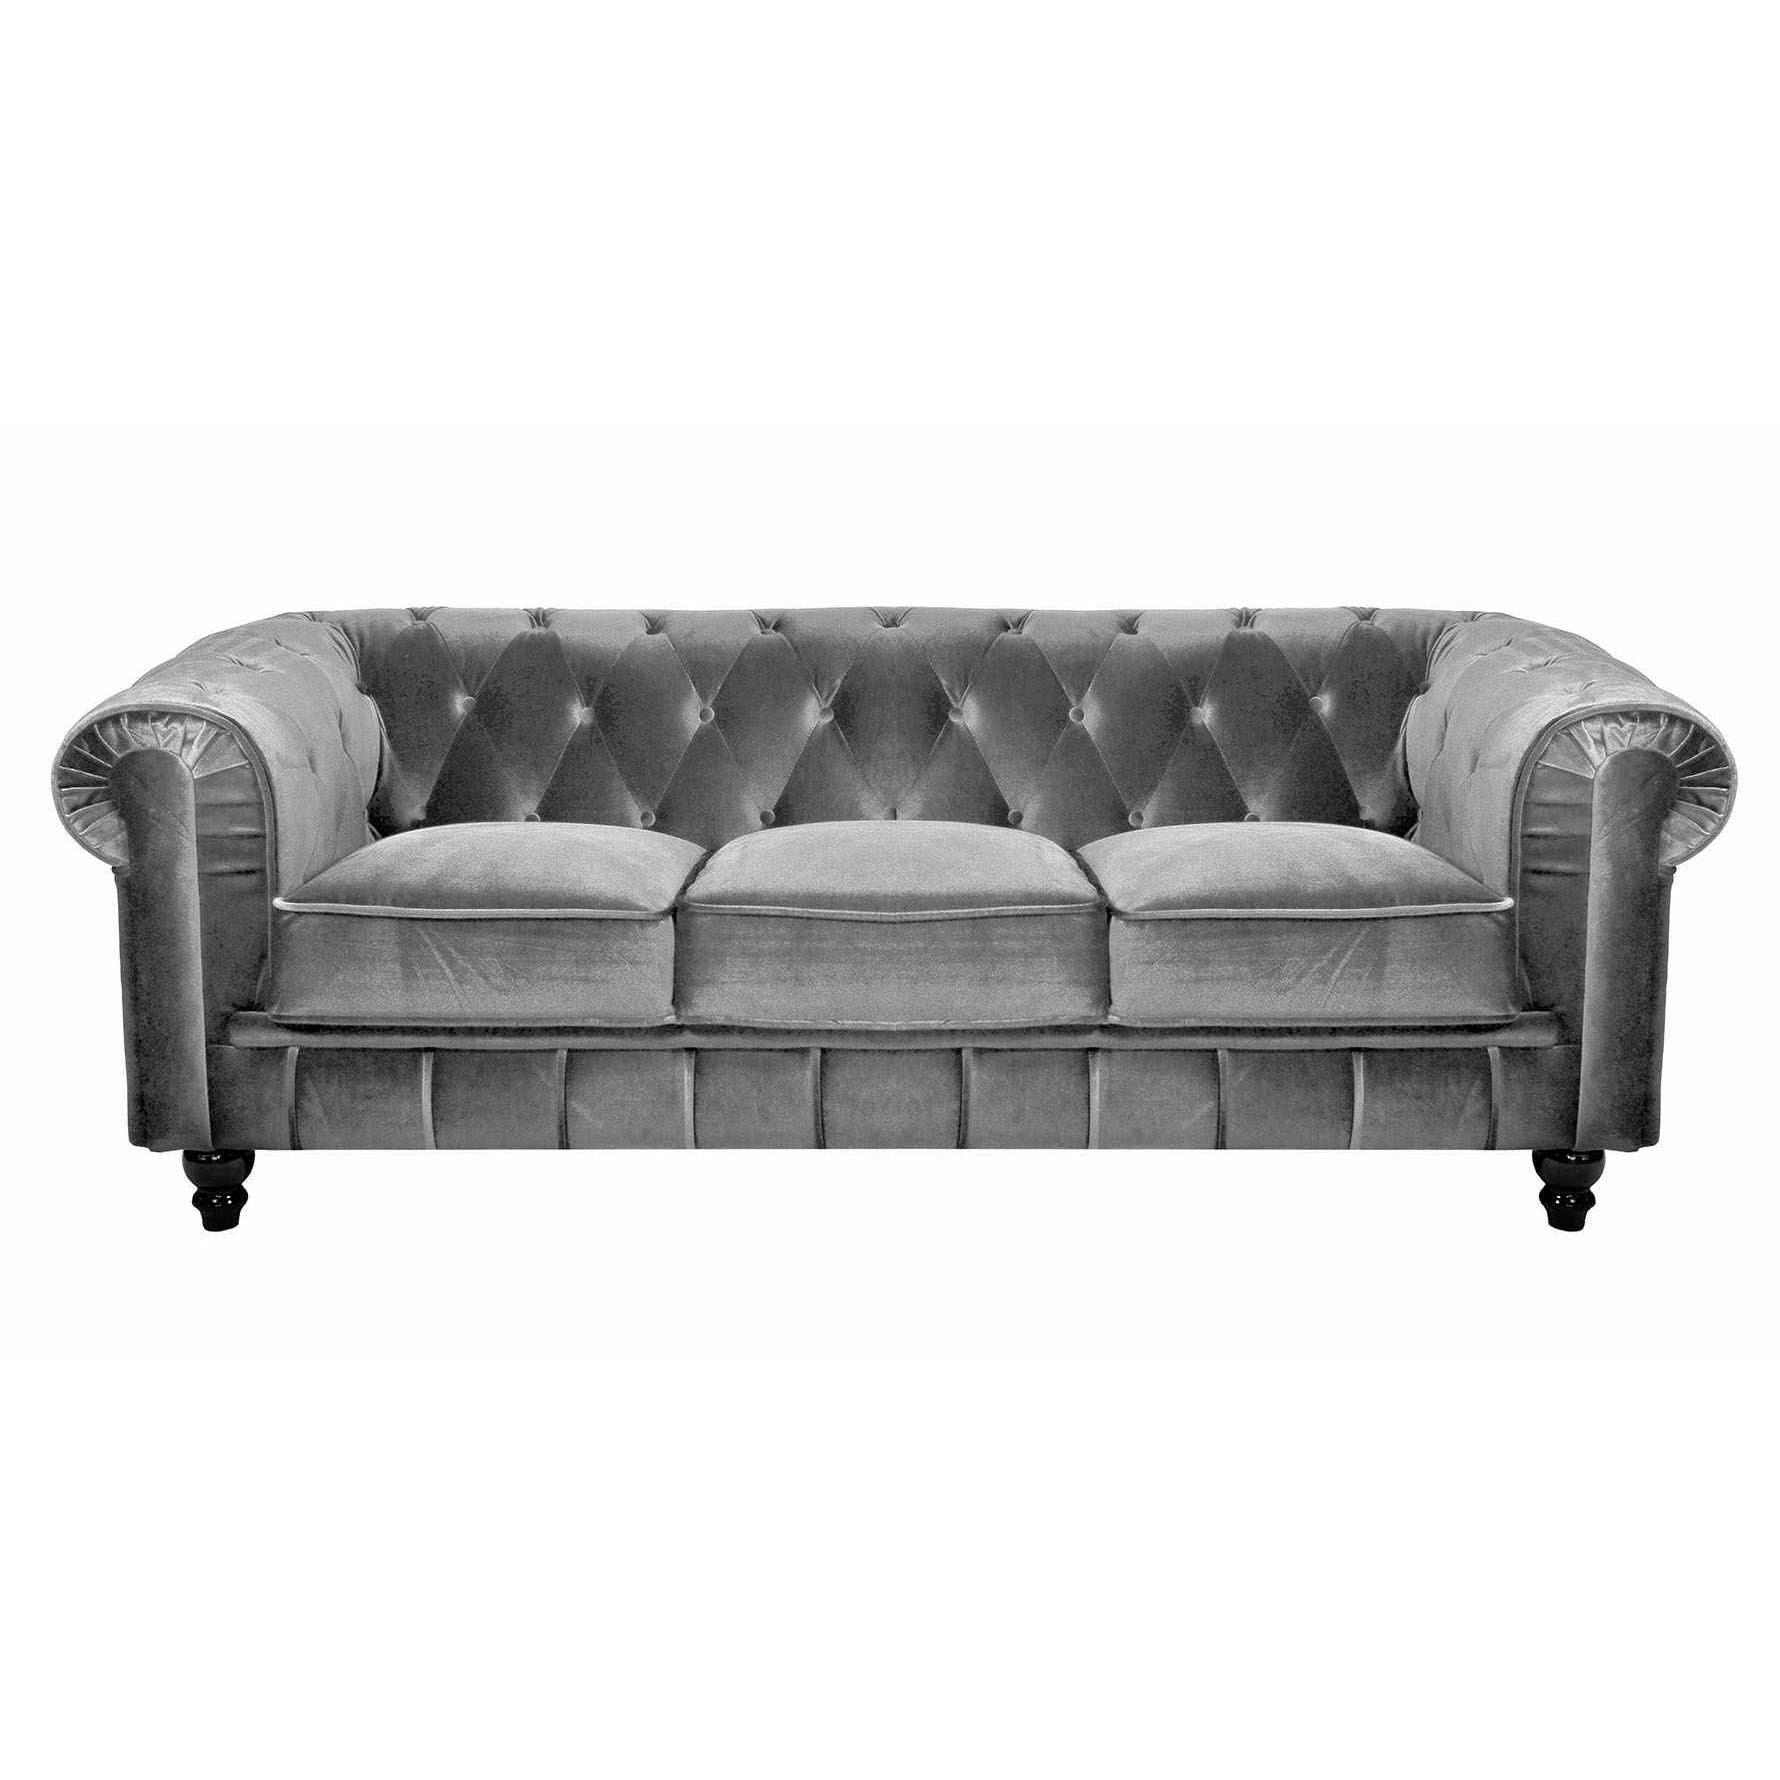 Deco in paris canape 3 places velours gris chesterfield - Canape en velours ...